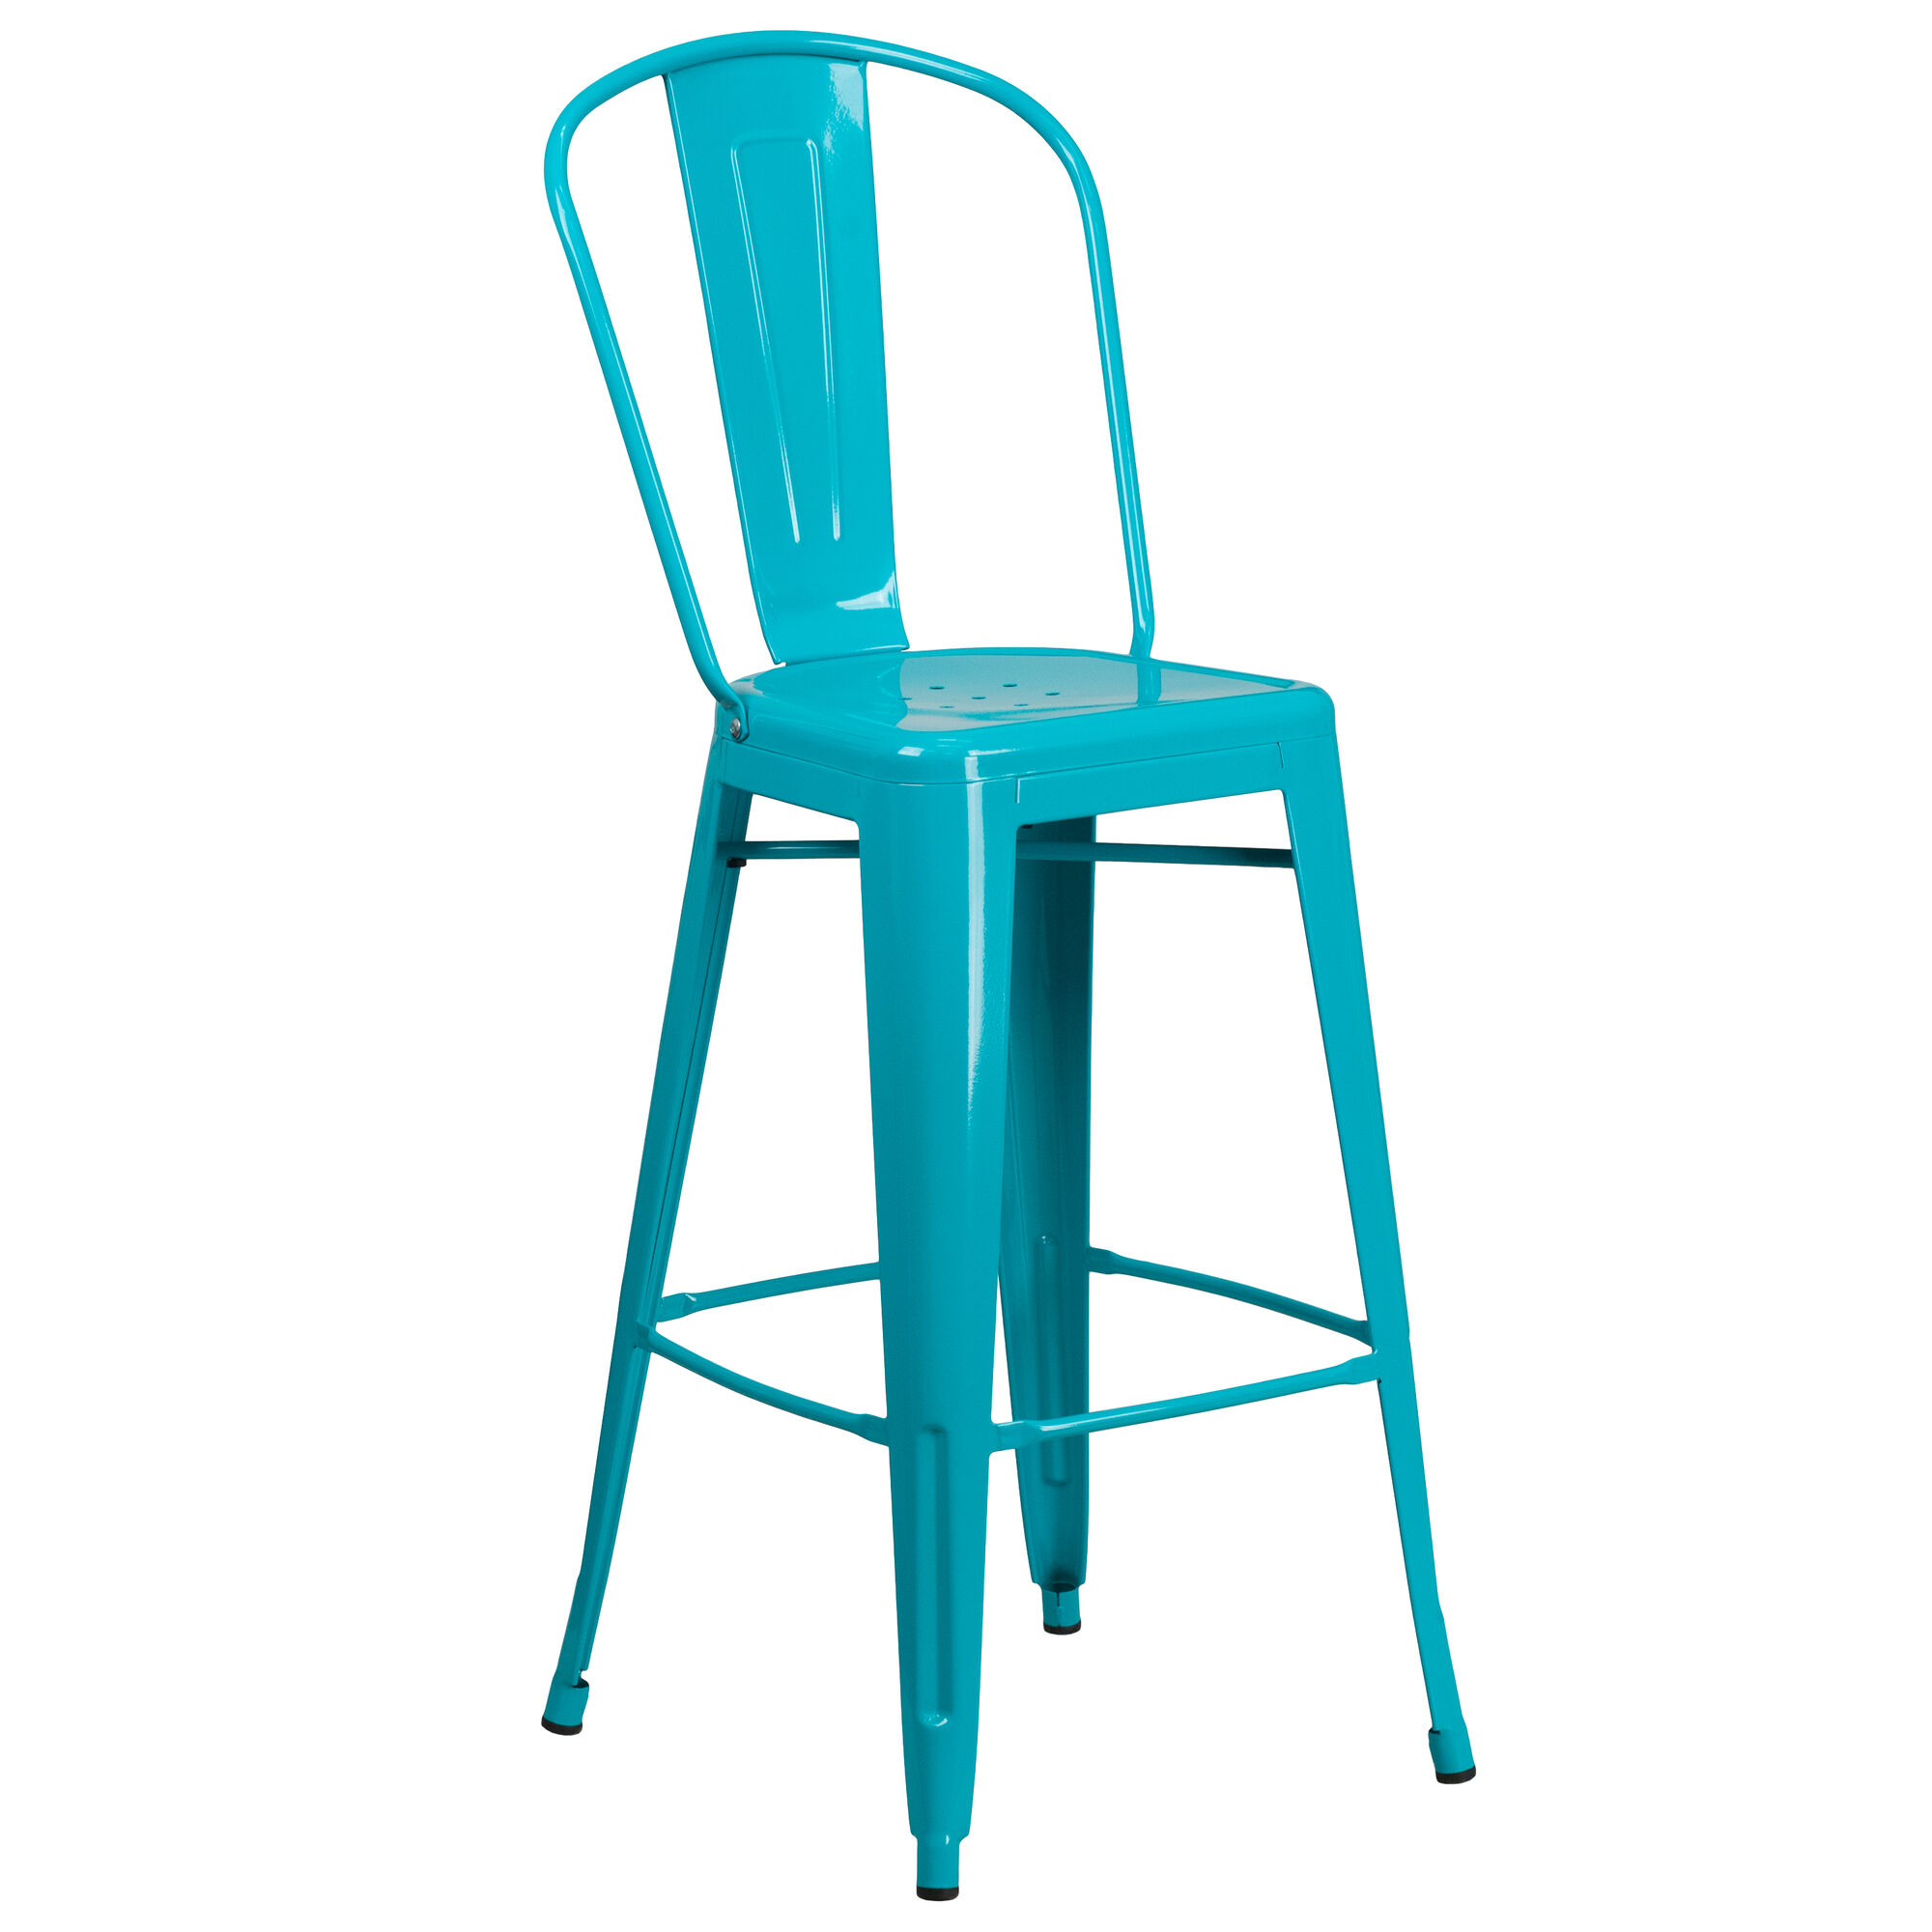 30 Quot Teal Metal Outdoor Stool Et 3534 30 Cb Gg